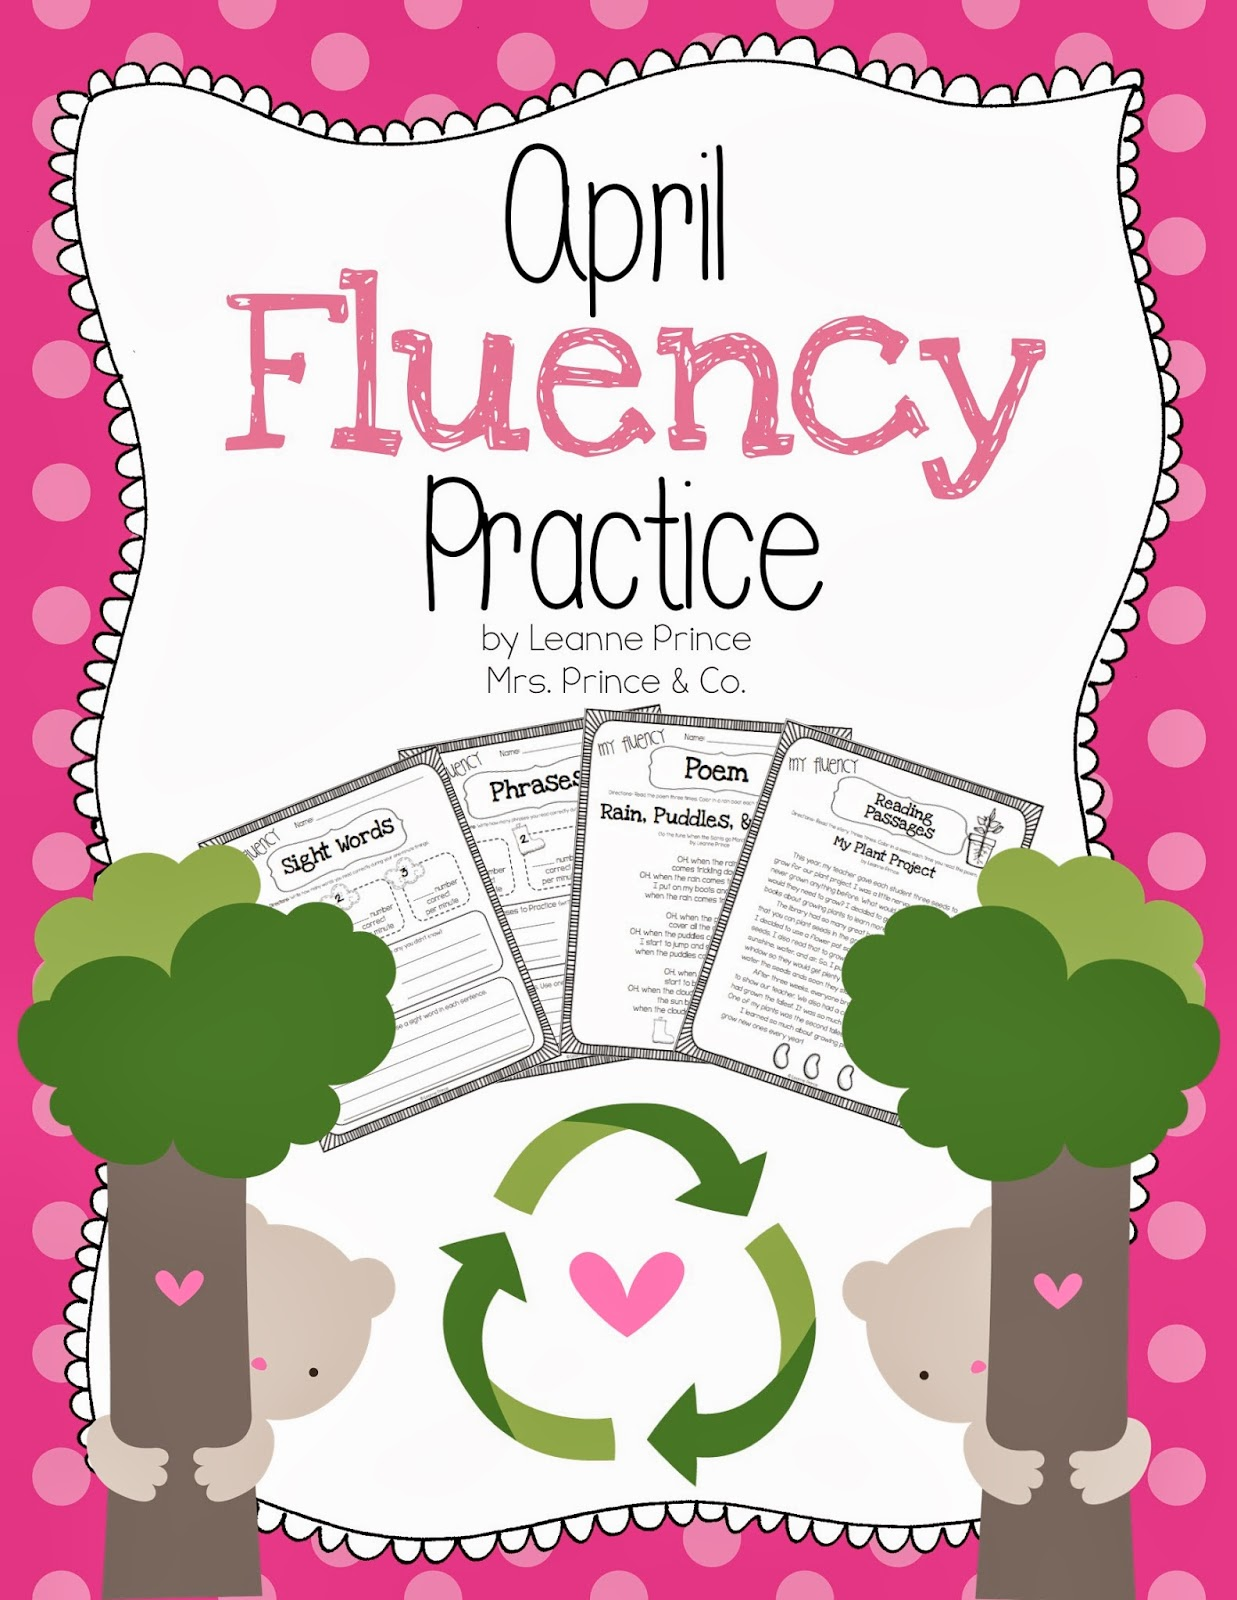 http://www.teacherspayteachers.com/Product/April-Fluency-Practice-627543